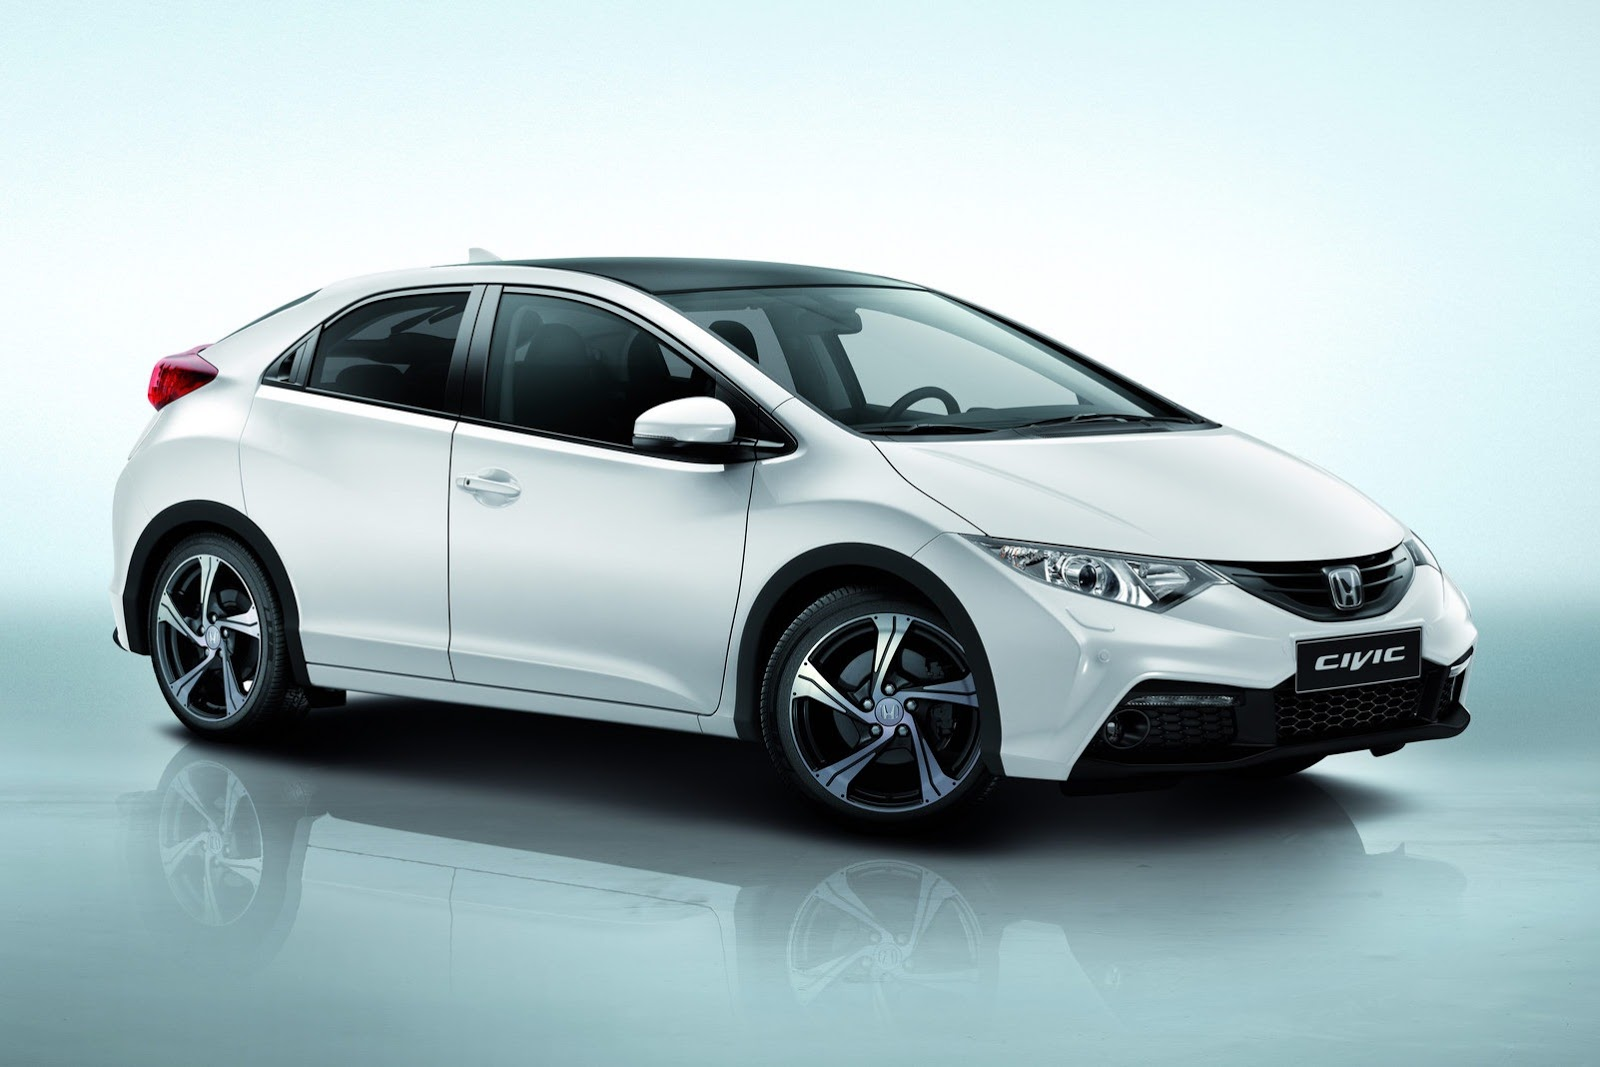 Honda Civic 2013 Aero | Flickr - Photo Sharing!